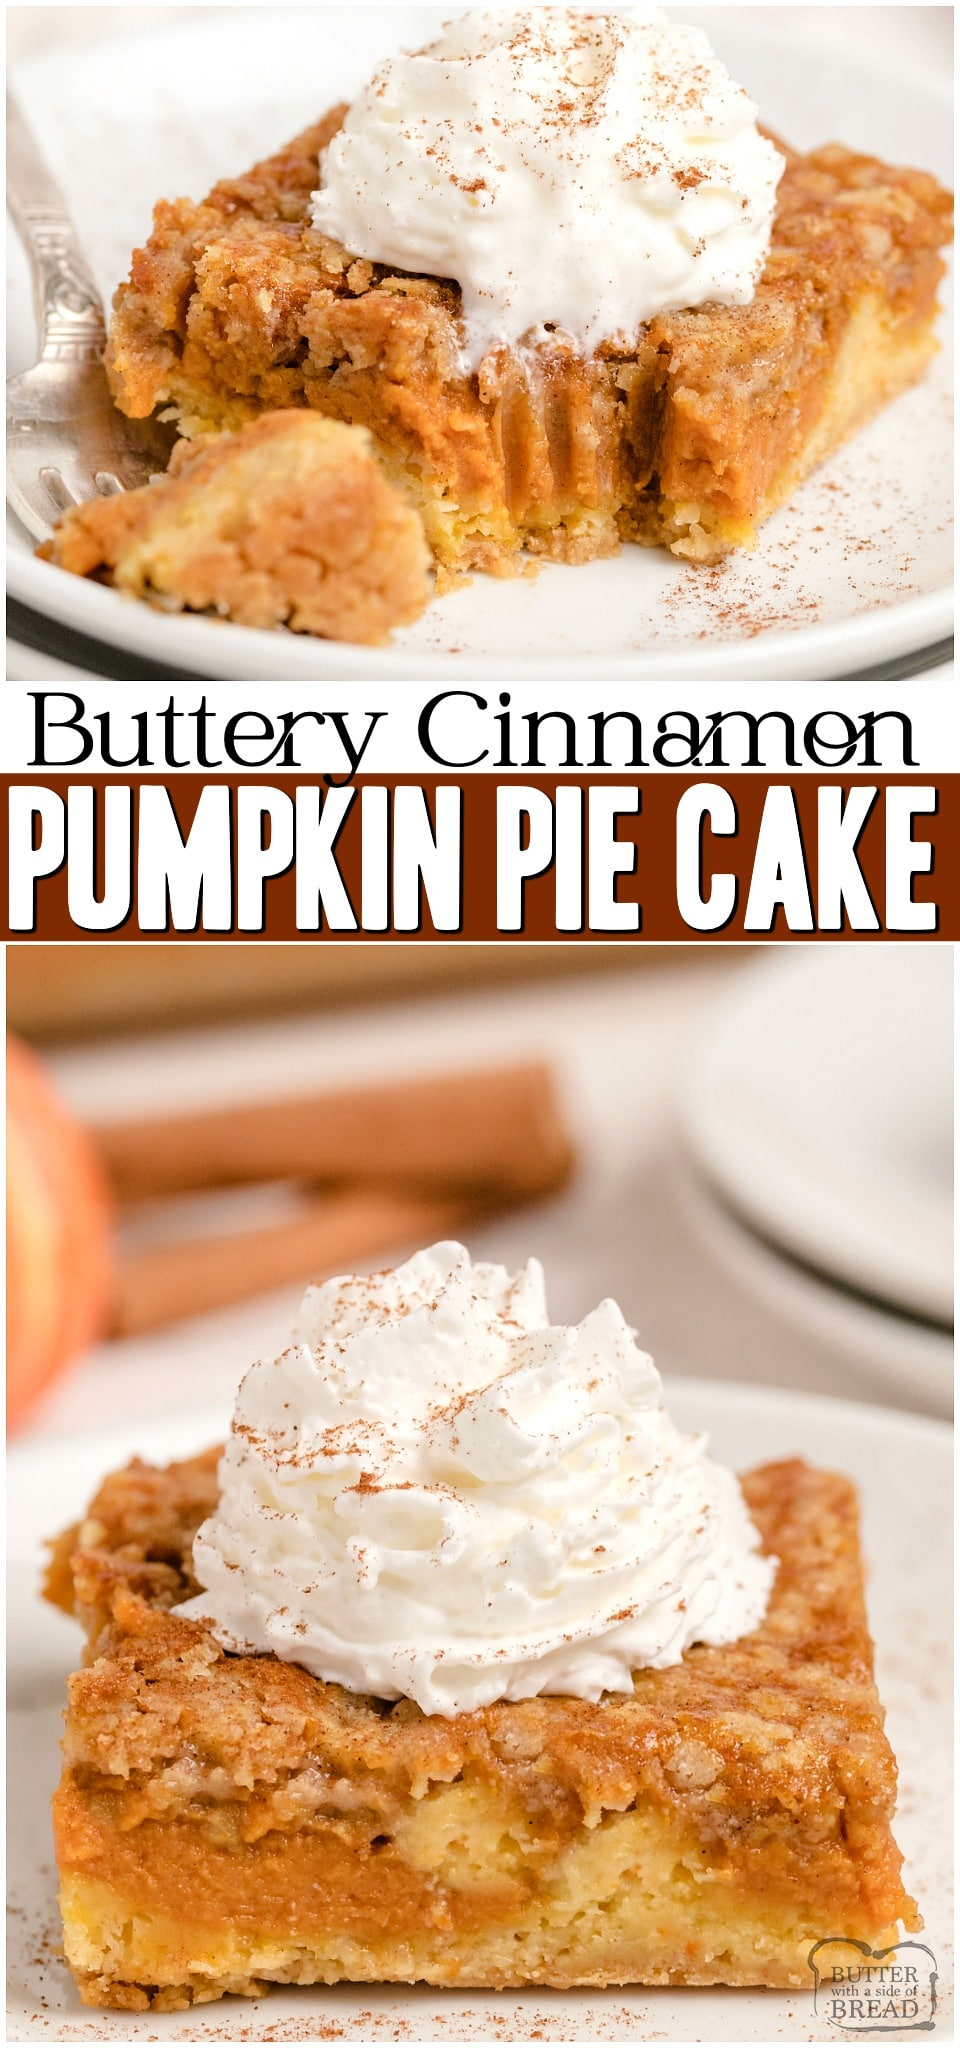 Pumpkin Pie Cake is festive Fall dessert made with a cake mix & pumpkin. Easy layered pumpkin cake that comes together fast and is a family favorite! #pumpkin #pumpkinpie #cake #Fall #dessert #baking #easyrecipe from BUTTER WITH A SIDE OF BREAD